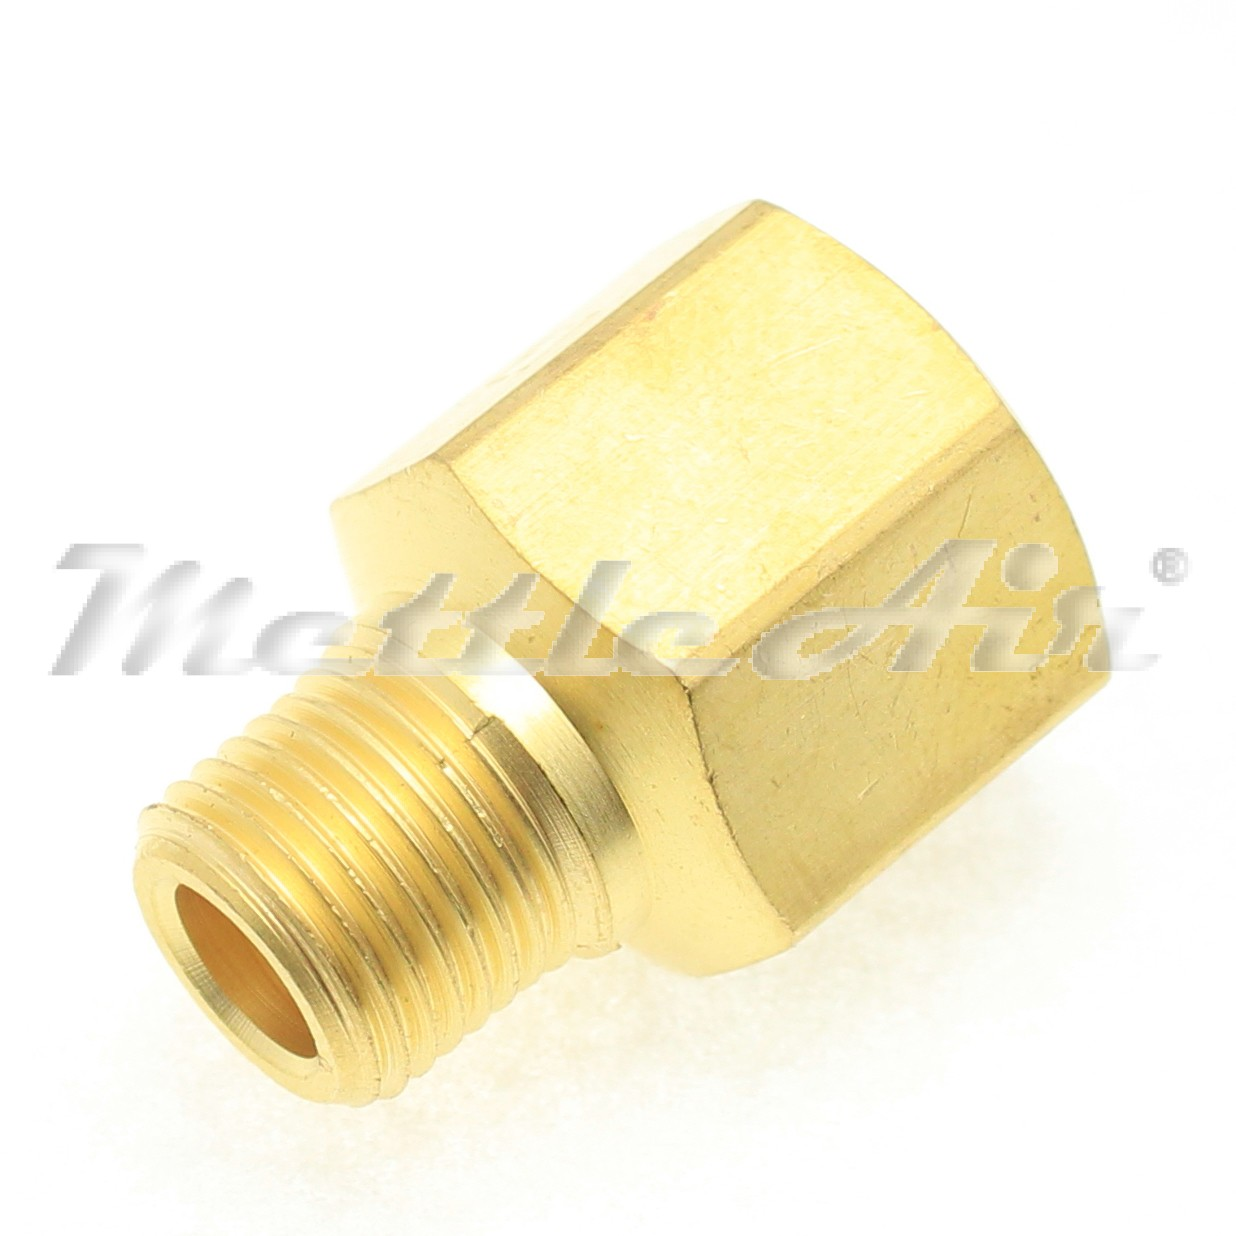 Brass pipe adaptor quot npt female m male nickel plated